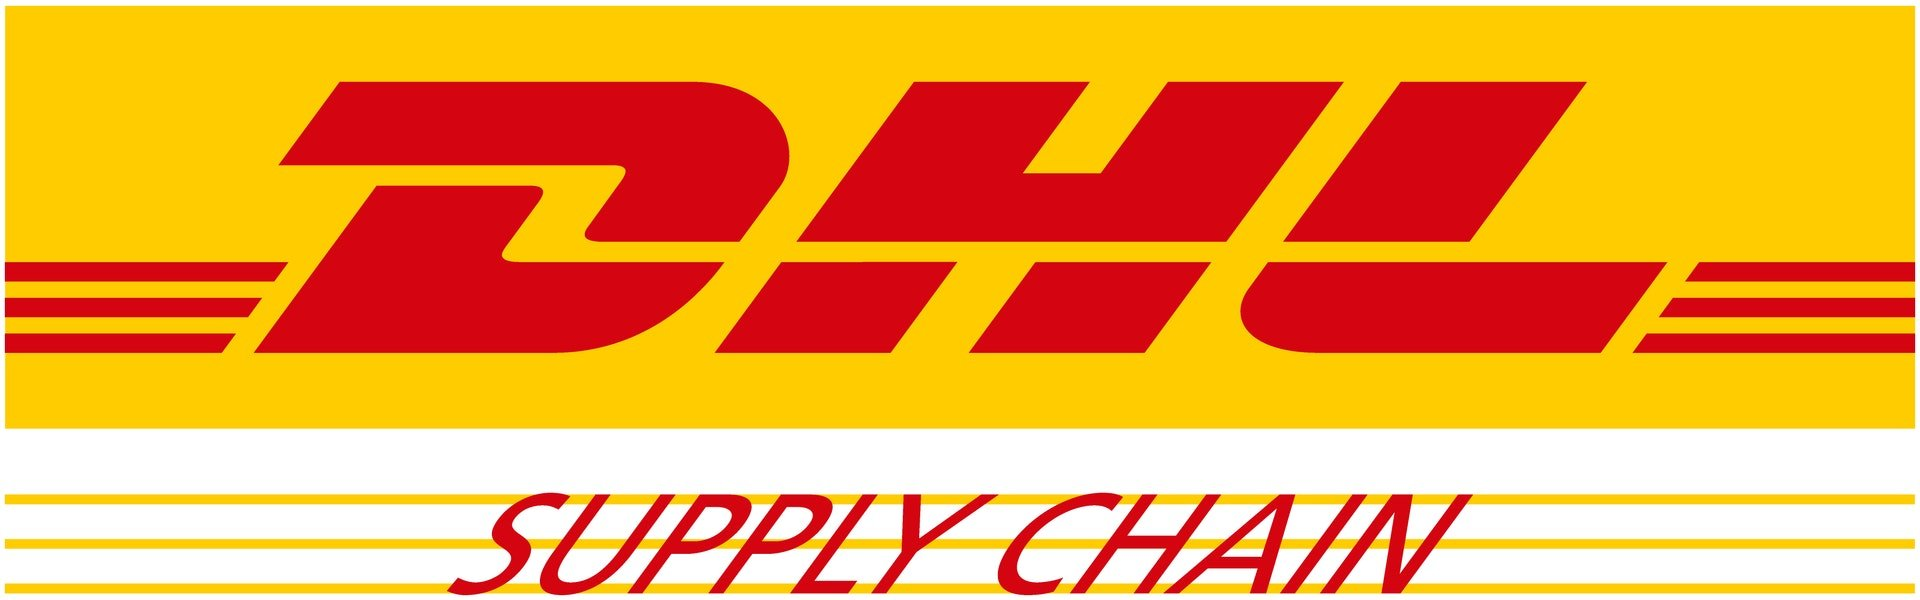 DHL_SupplyChain_logo.5b02ce664821a.png